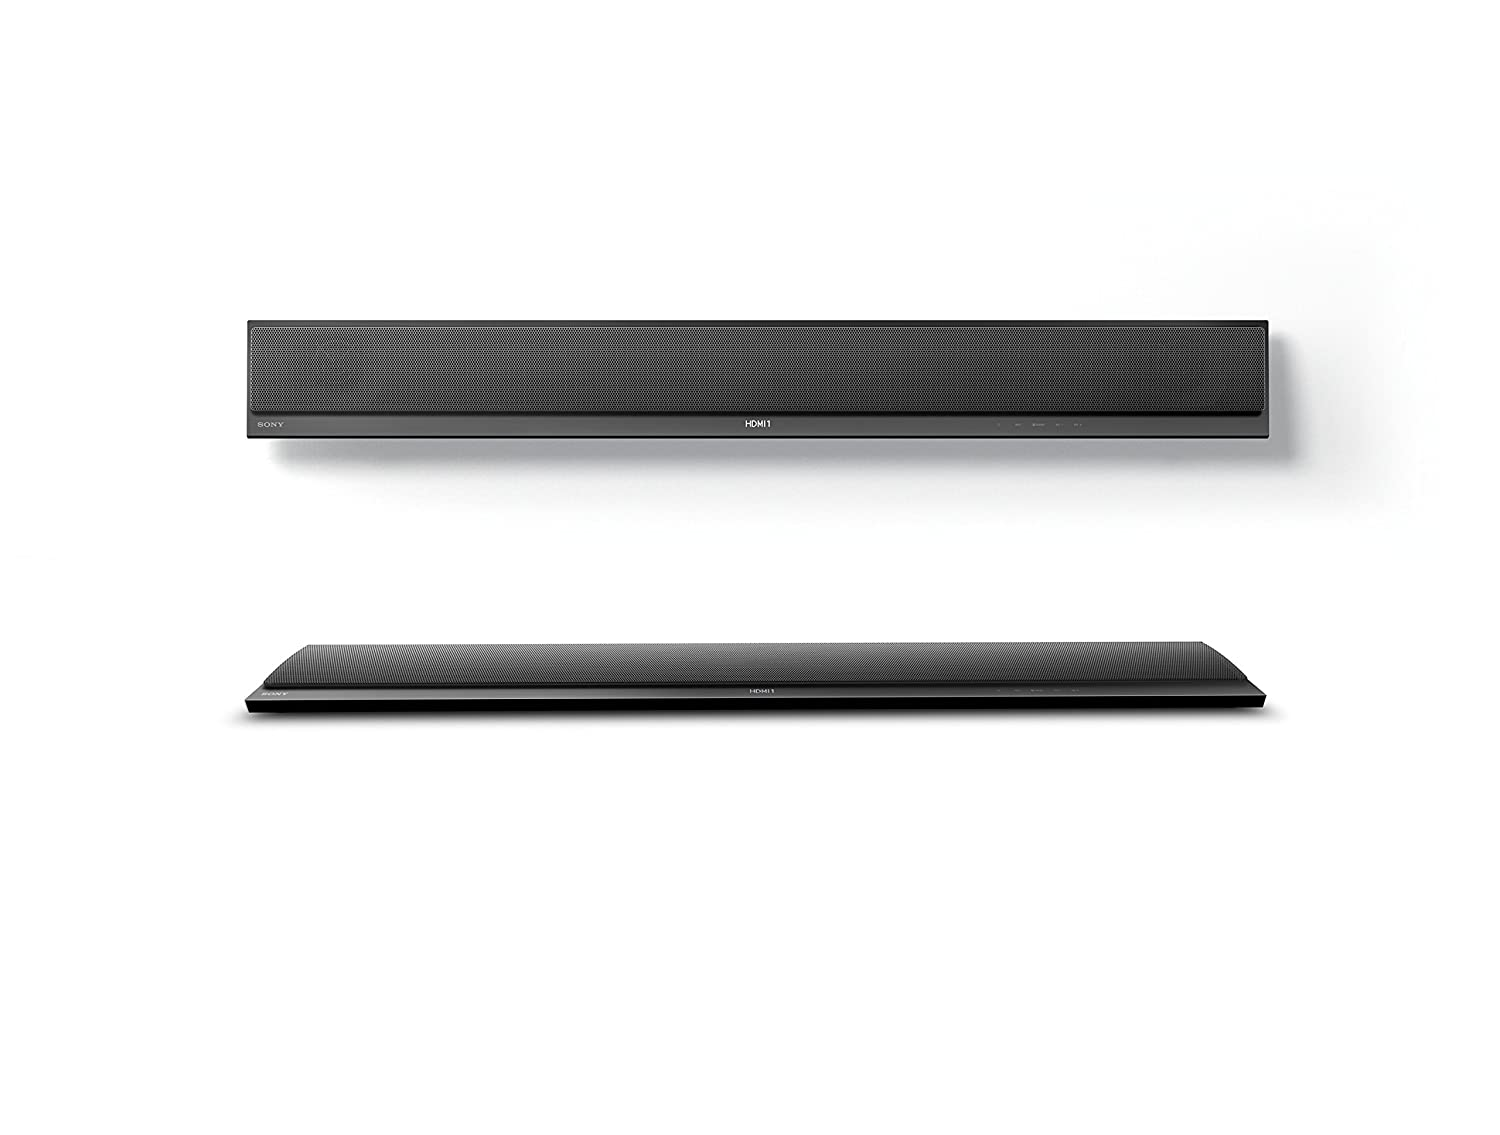 Sony Htct790 Sound Bar With 4k And Hdr Support Home Wiring Diagram Audio Theater